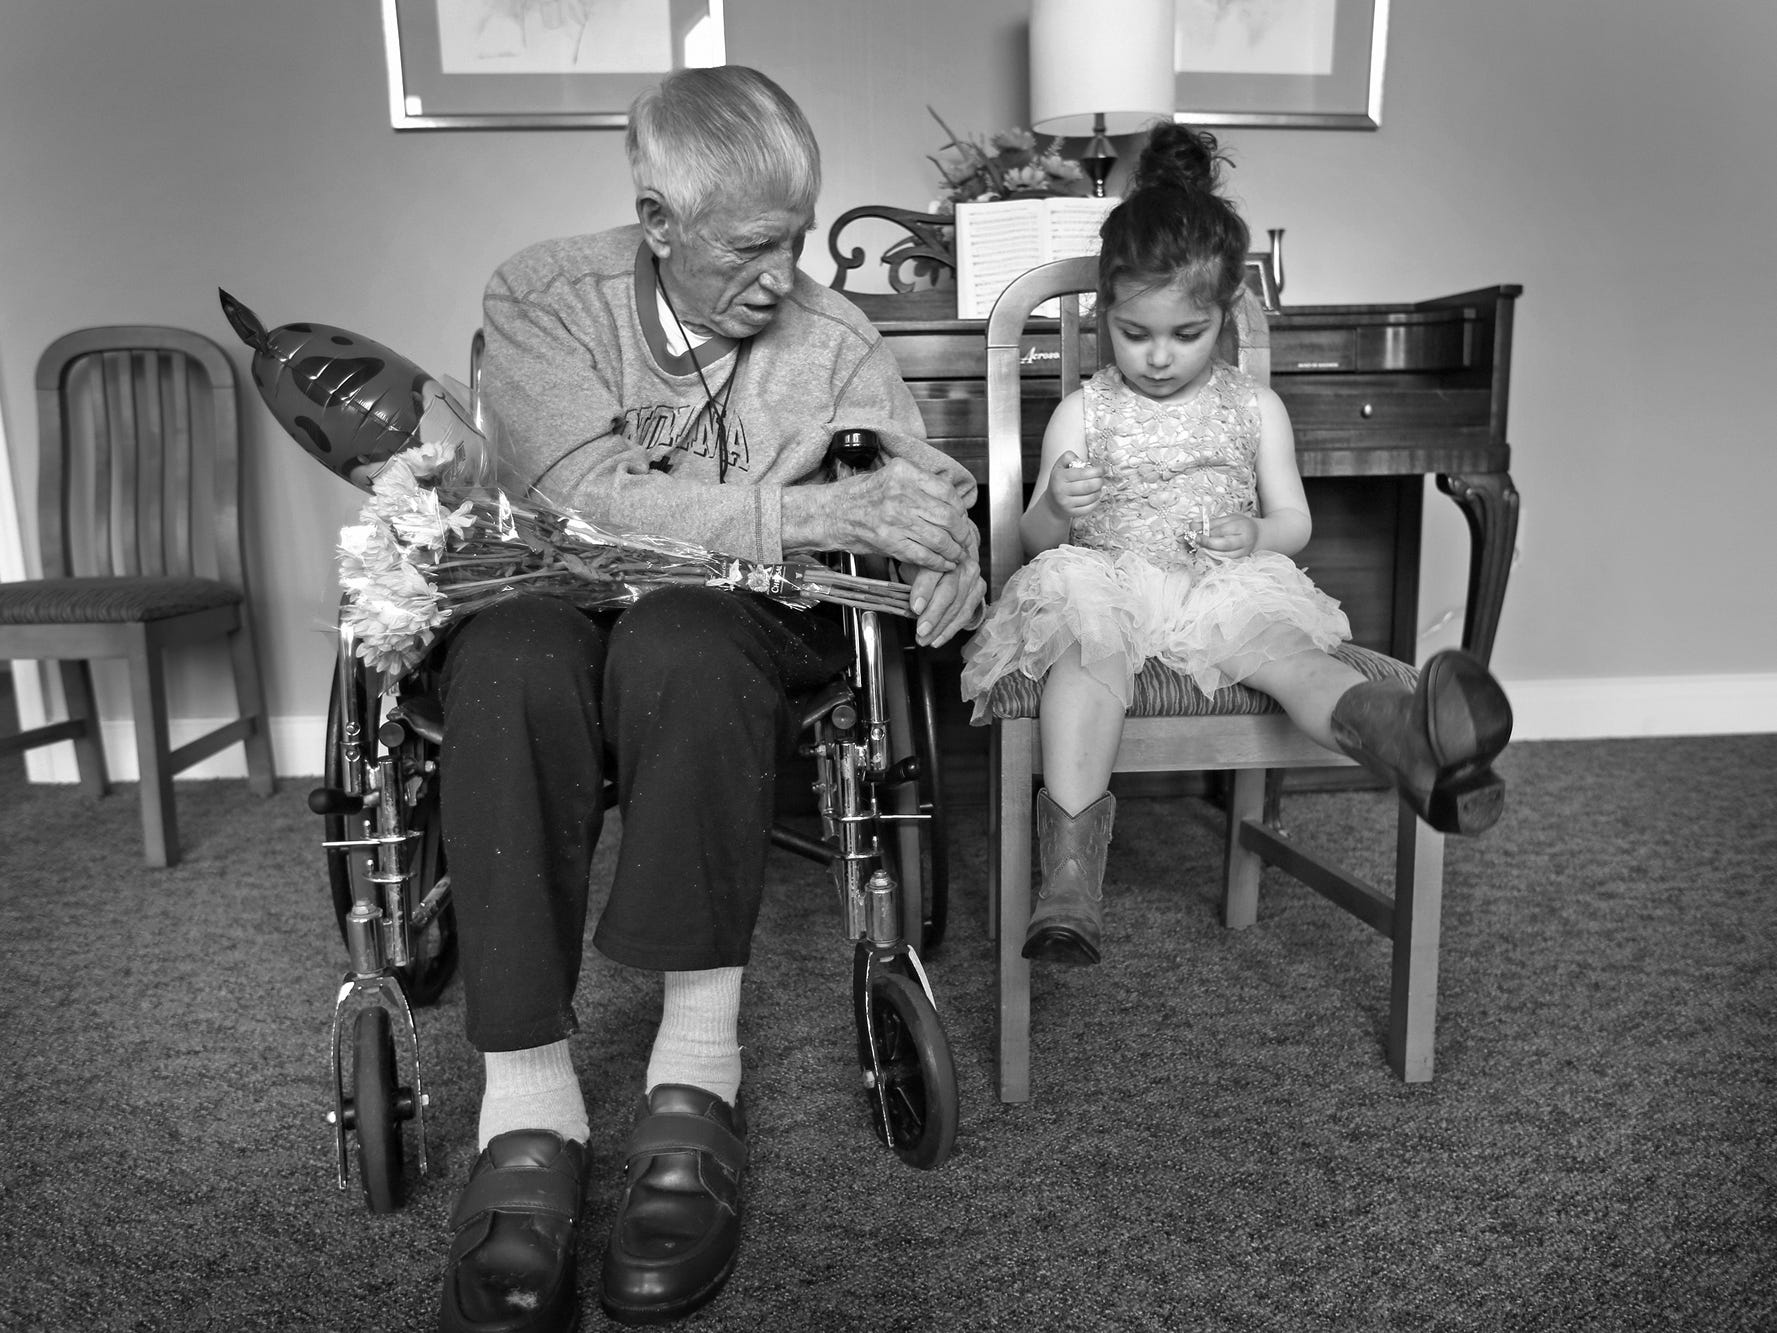 Dewey Logeland, left, and Julia Gonzalez, eat chocolate, as they visit at the Abbie Hunt Bryce Home, Friday, April 27, 2018.  The home offers hospice for the dying poor. Julia, whose mother works often at the home, shares a love of horses with Logeland.  She and her family visited him, and shared chocolate and flowers.